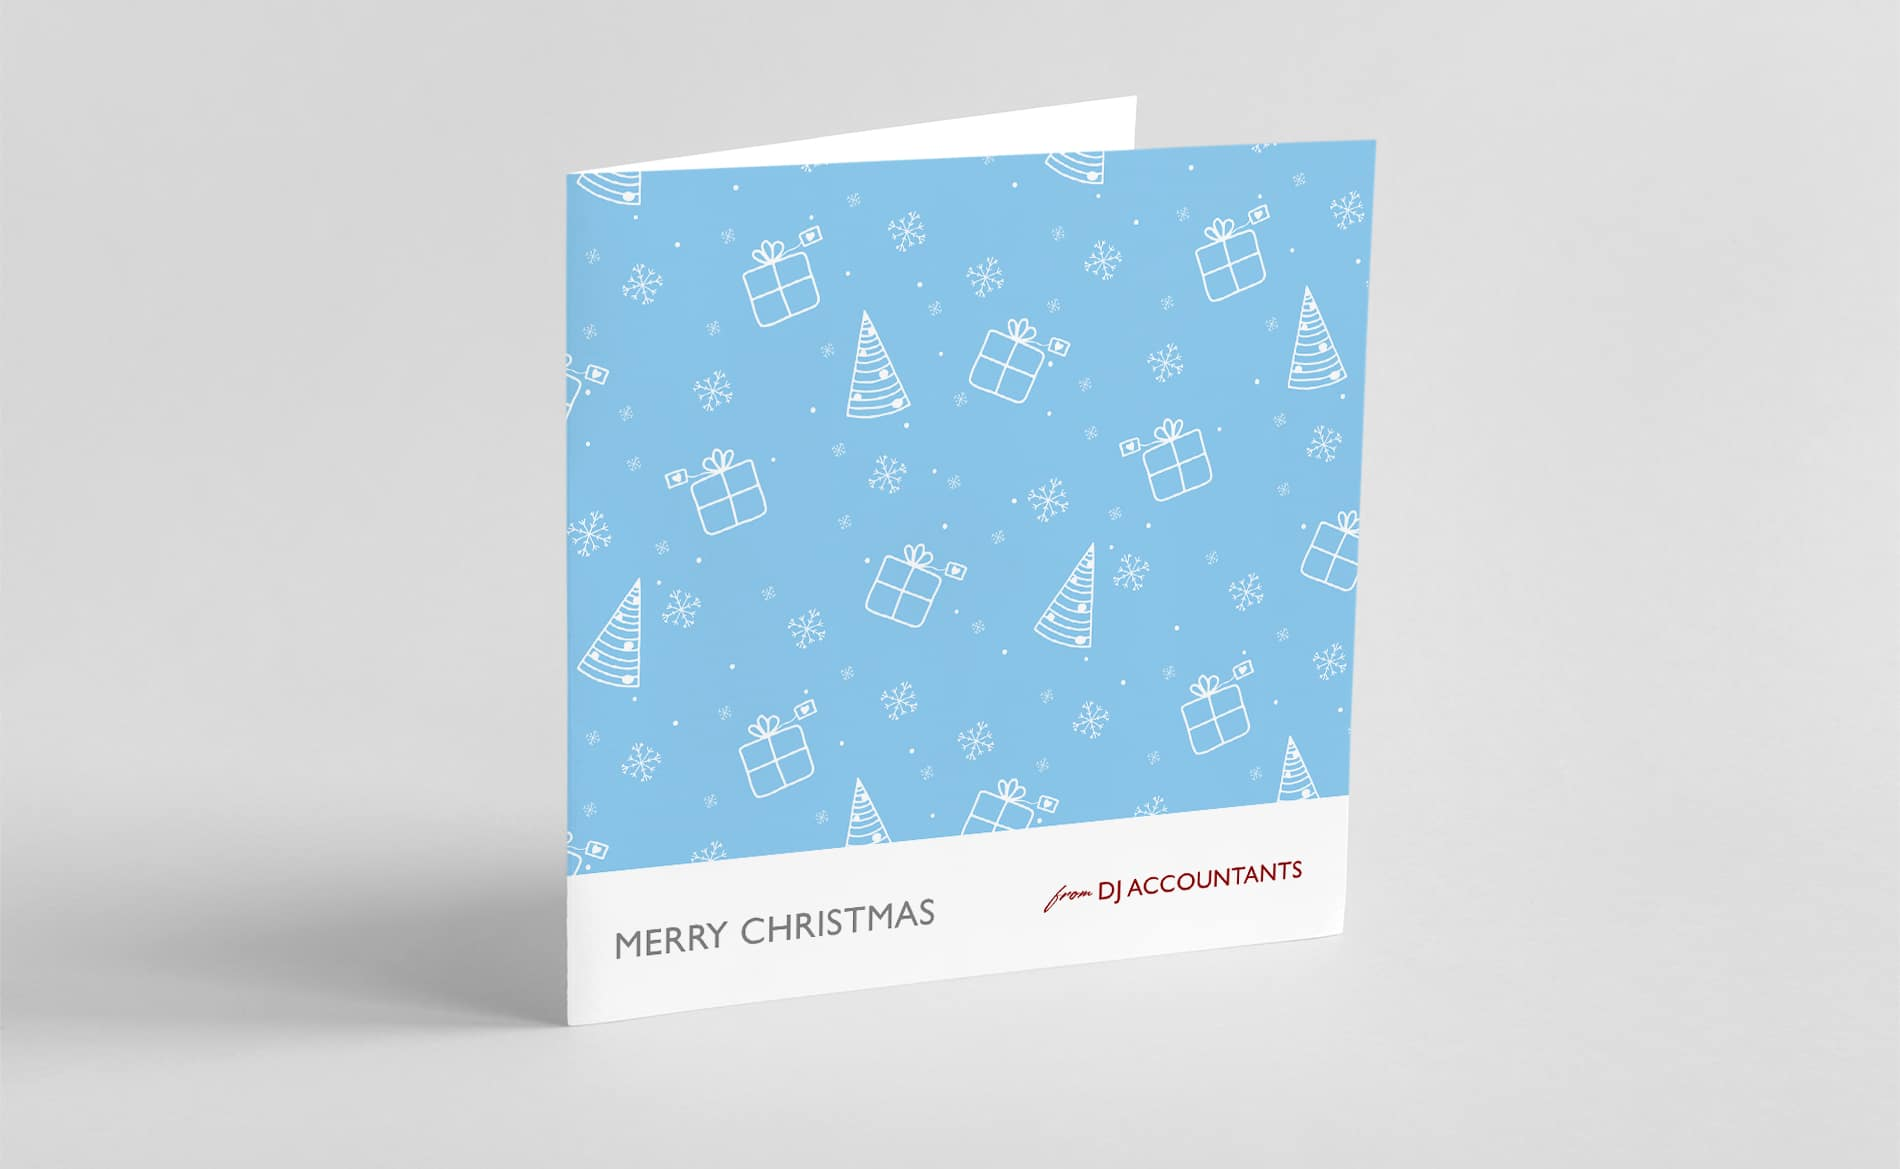 Sherwin Rivers Printers Ltd - Stoke-on-Trent, Staffordshire, Christmas Festive Print Collection - Personalised Christmas, Greeting Cards